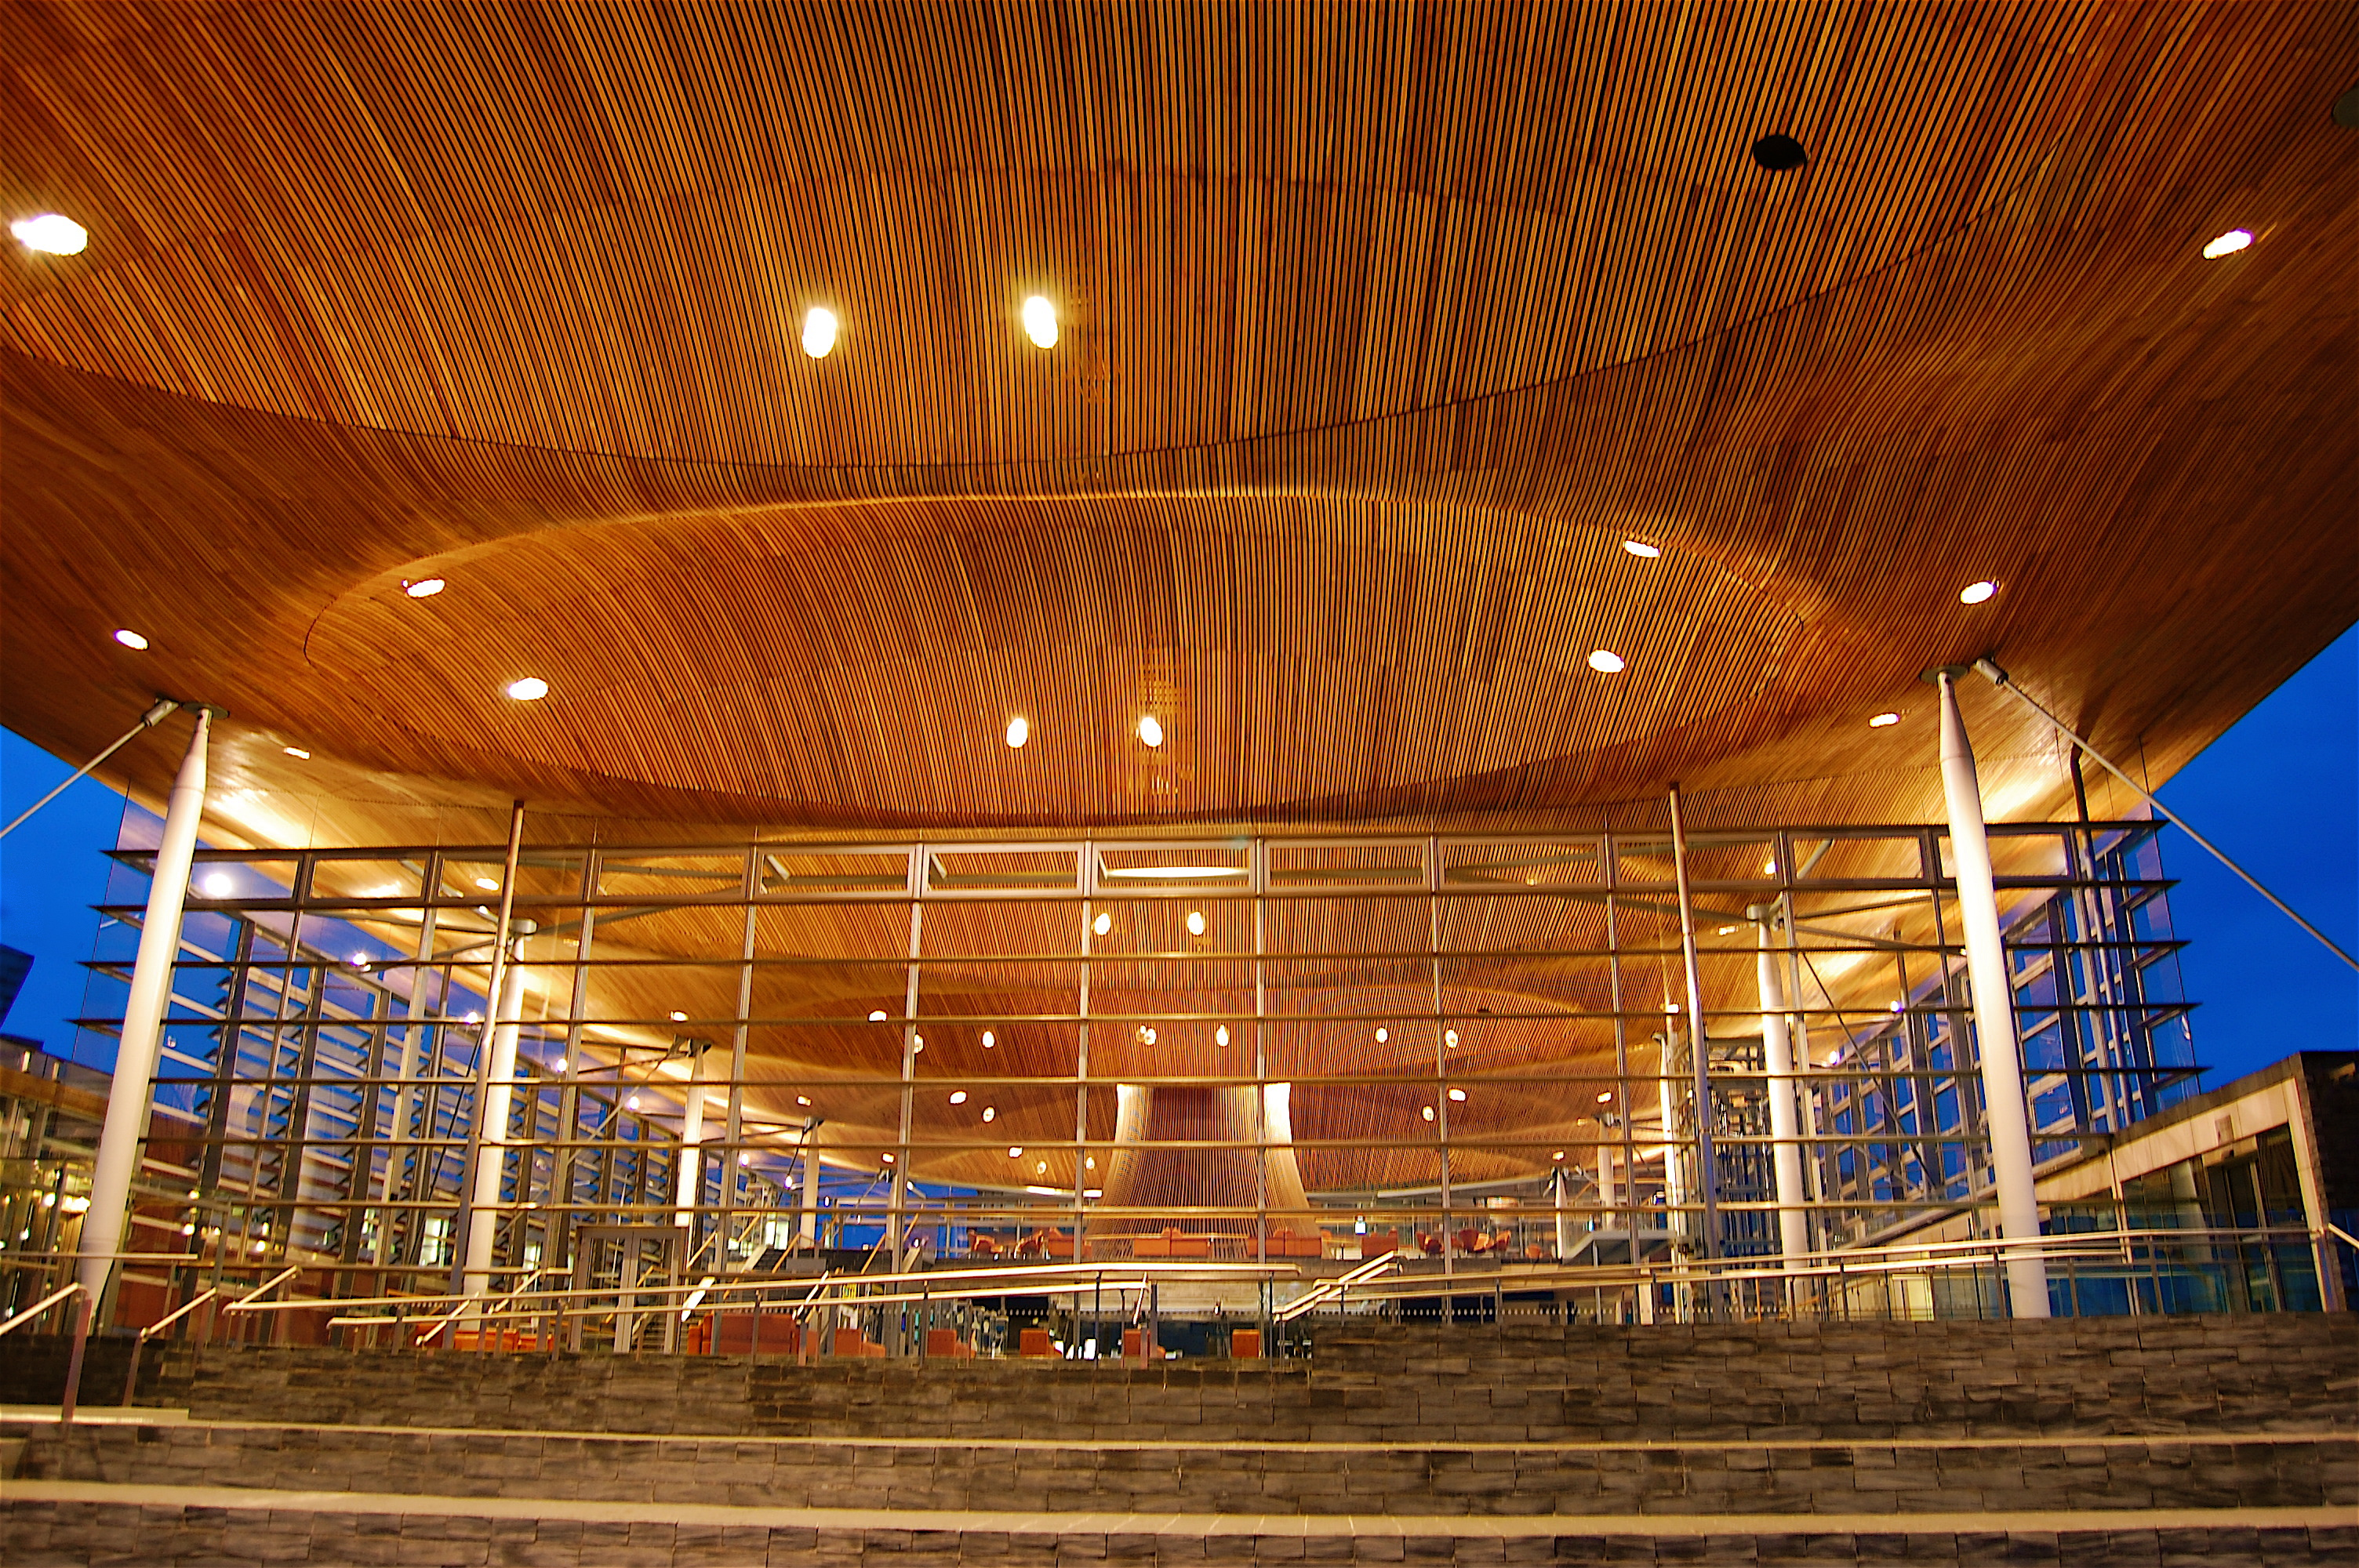 Welsh_National_Assembly_Senedd.jpg